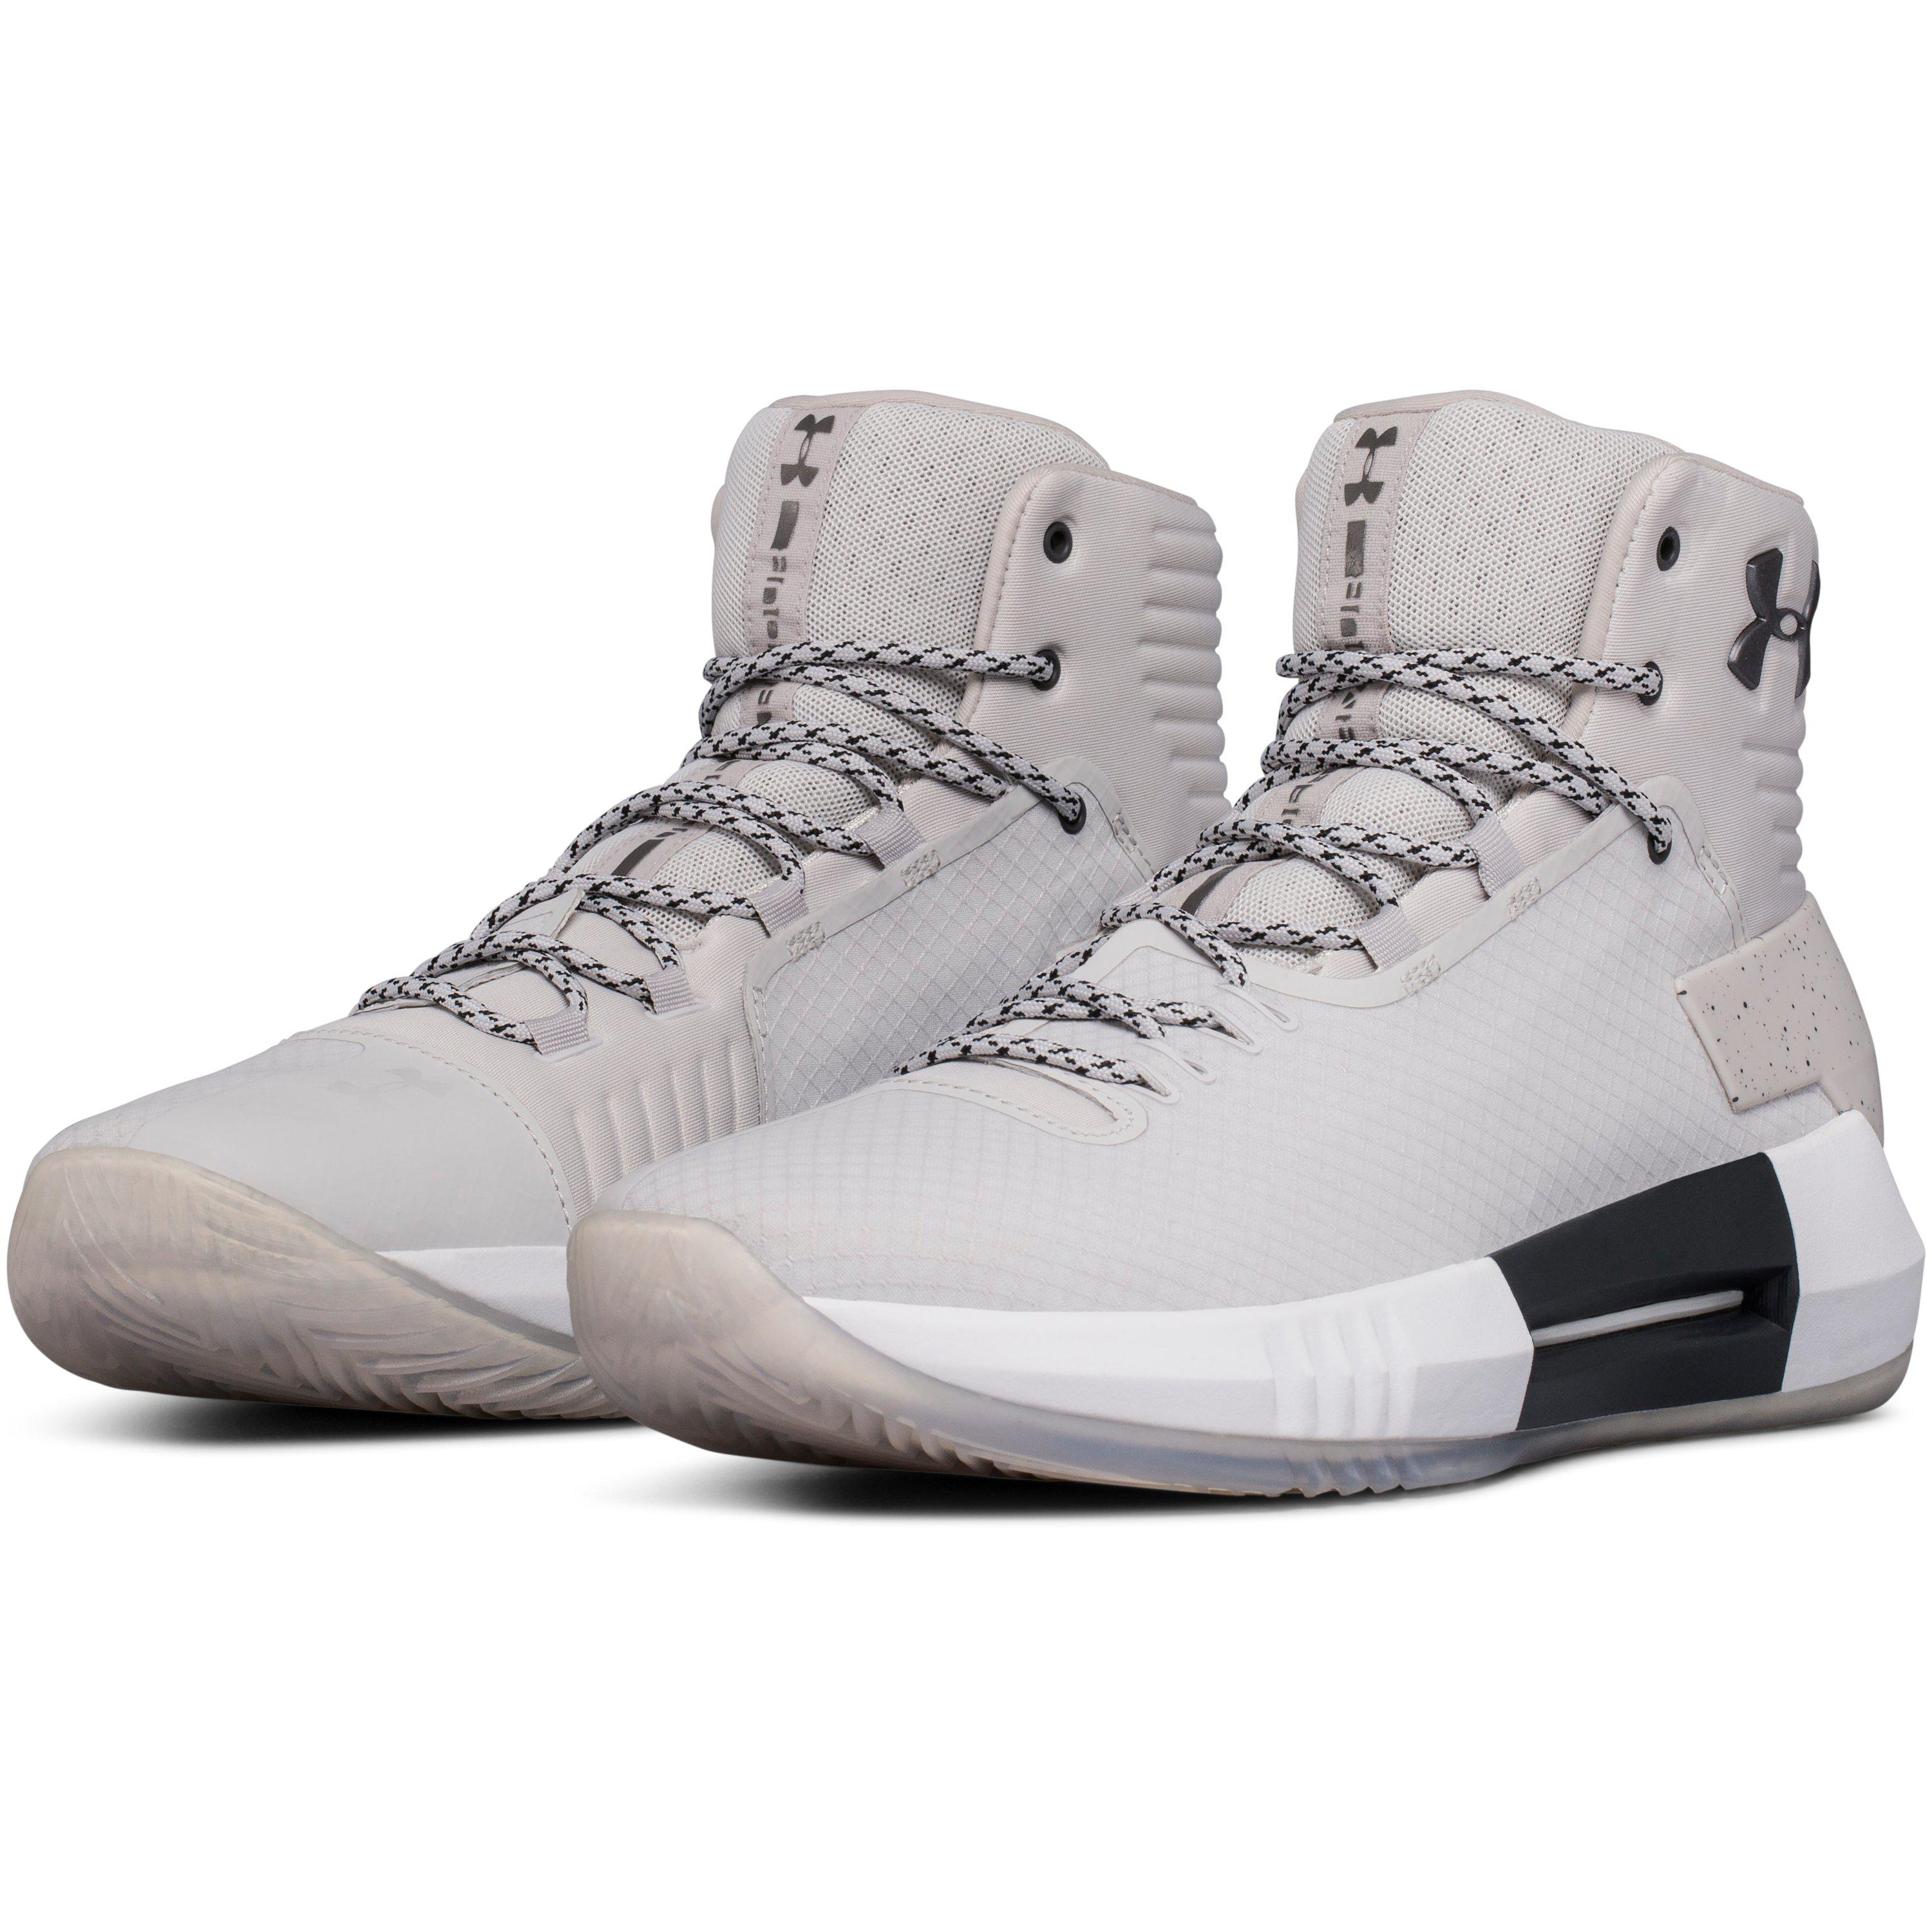 9c4249225538 ... Lyst Under Armour Men s Ua Drive 4 X Basketball Shoes in Gray for Men